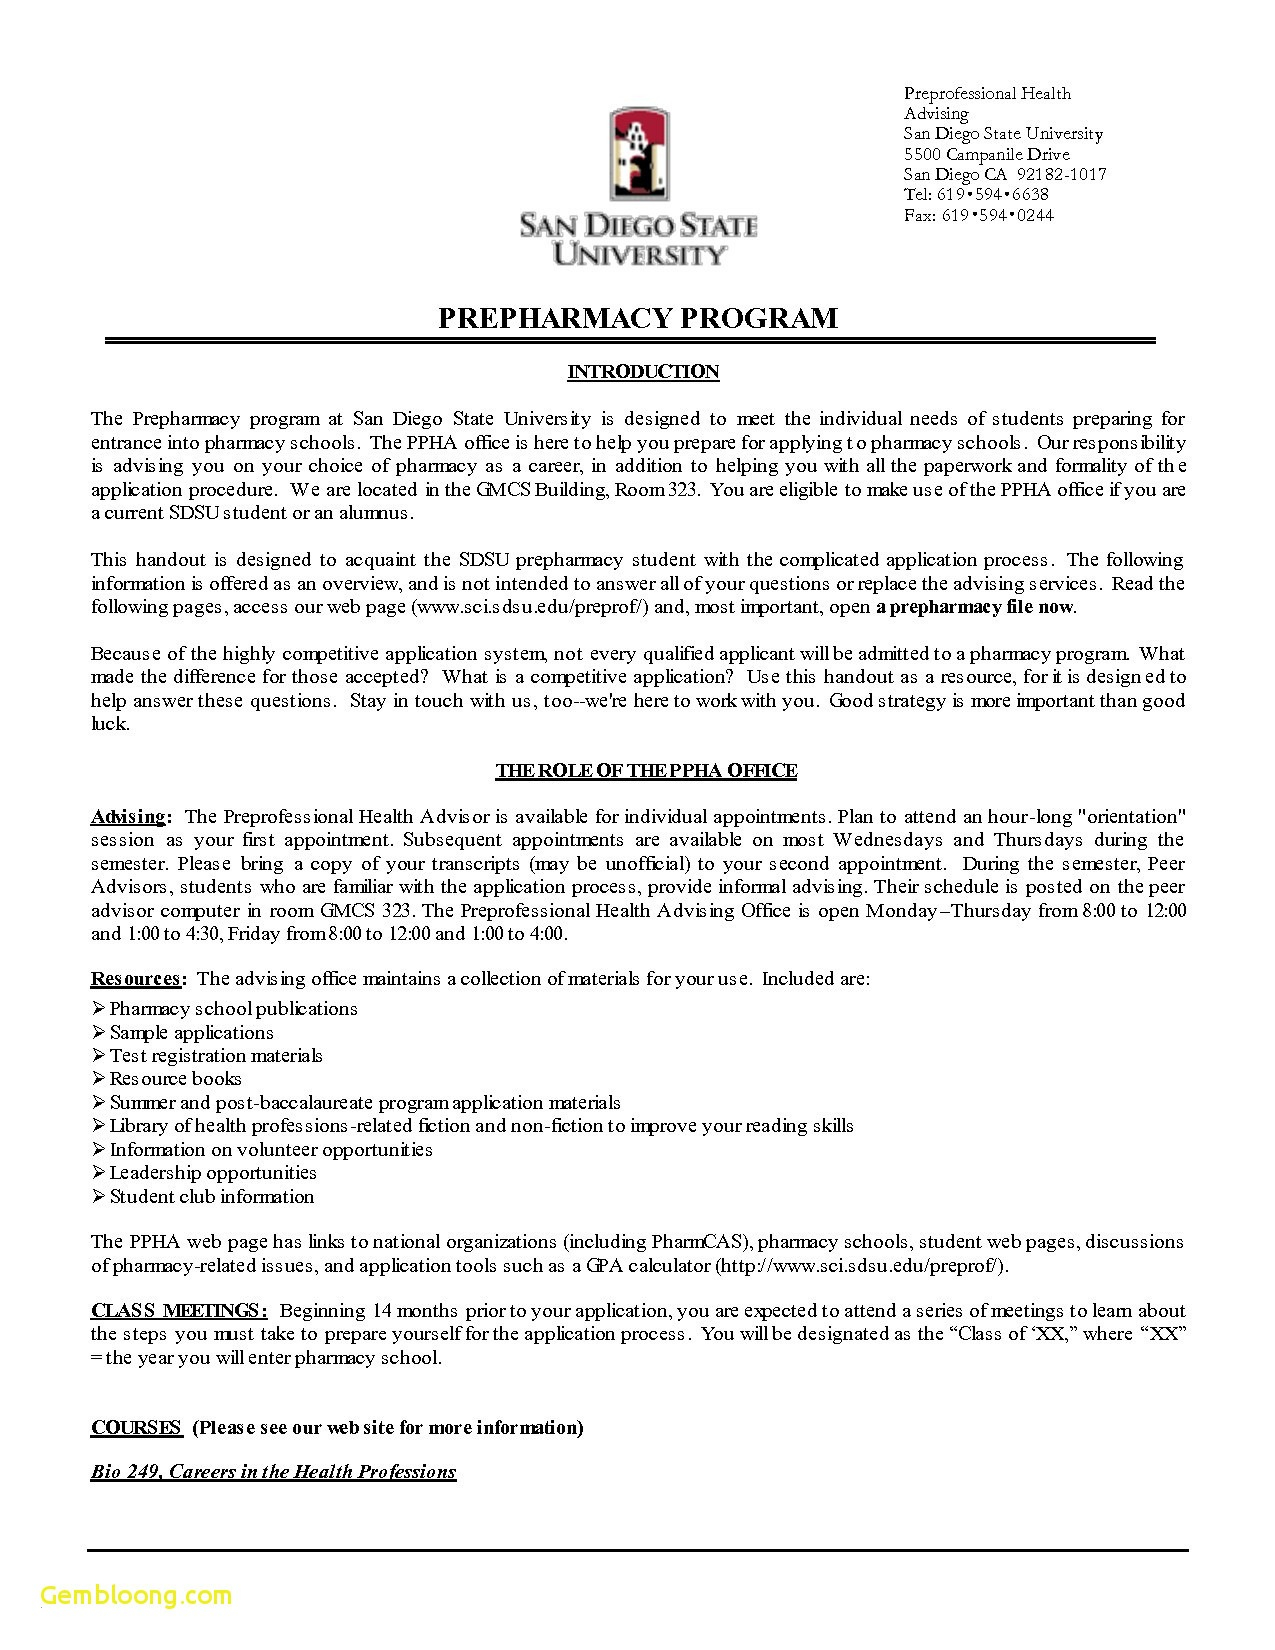 Pharmacist Resume Template - Pharmacist Resume Templates Inspirational Pharmacist Resume Example